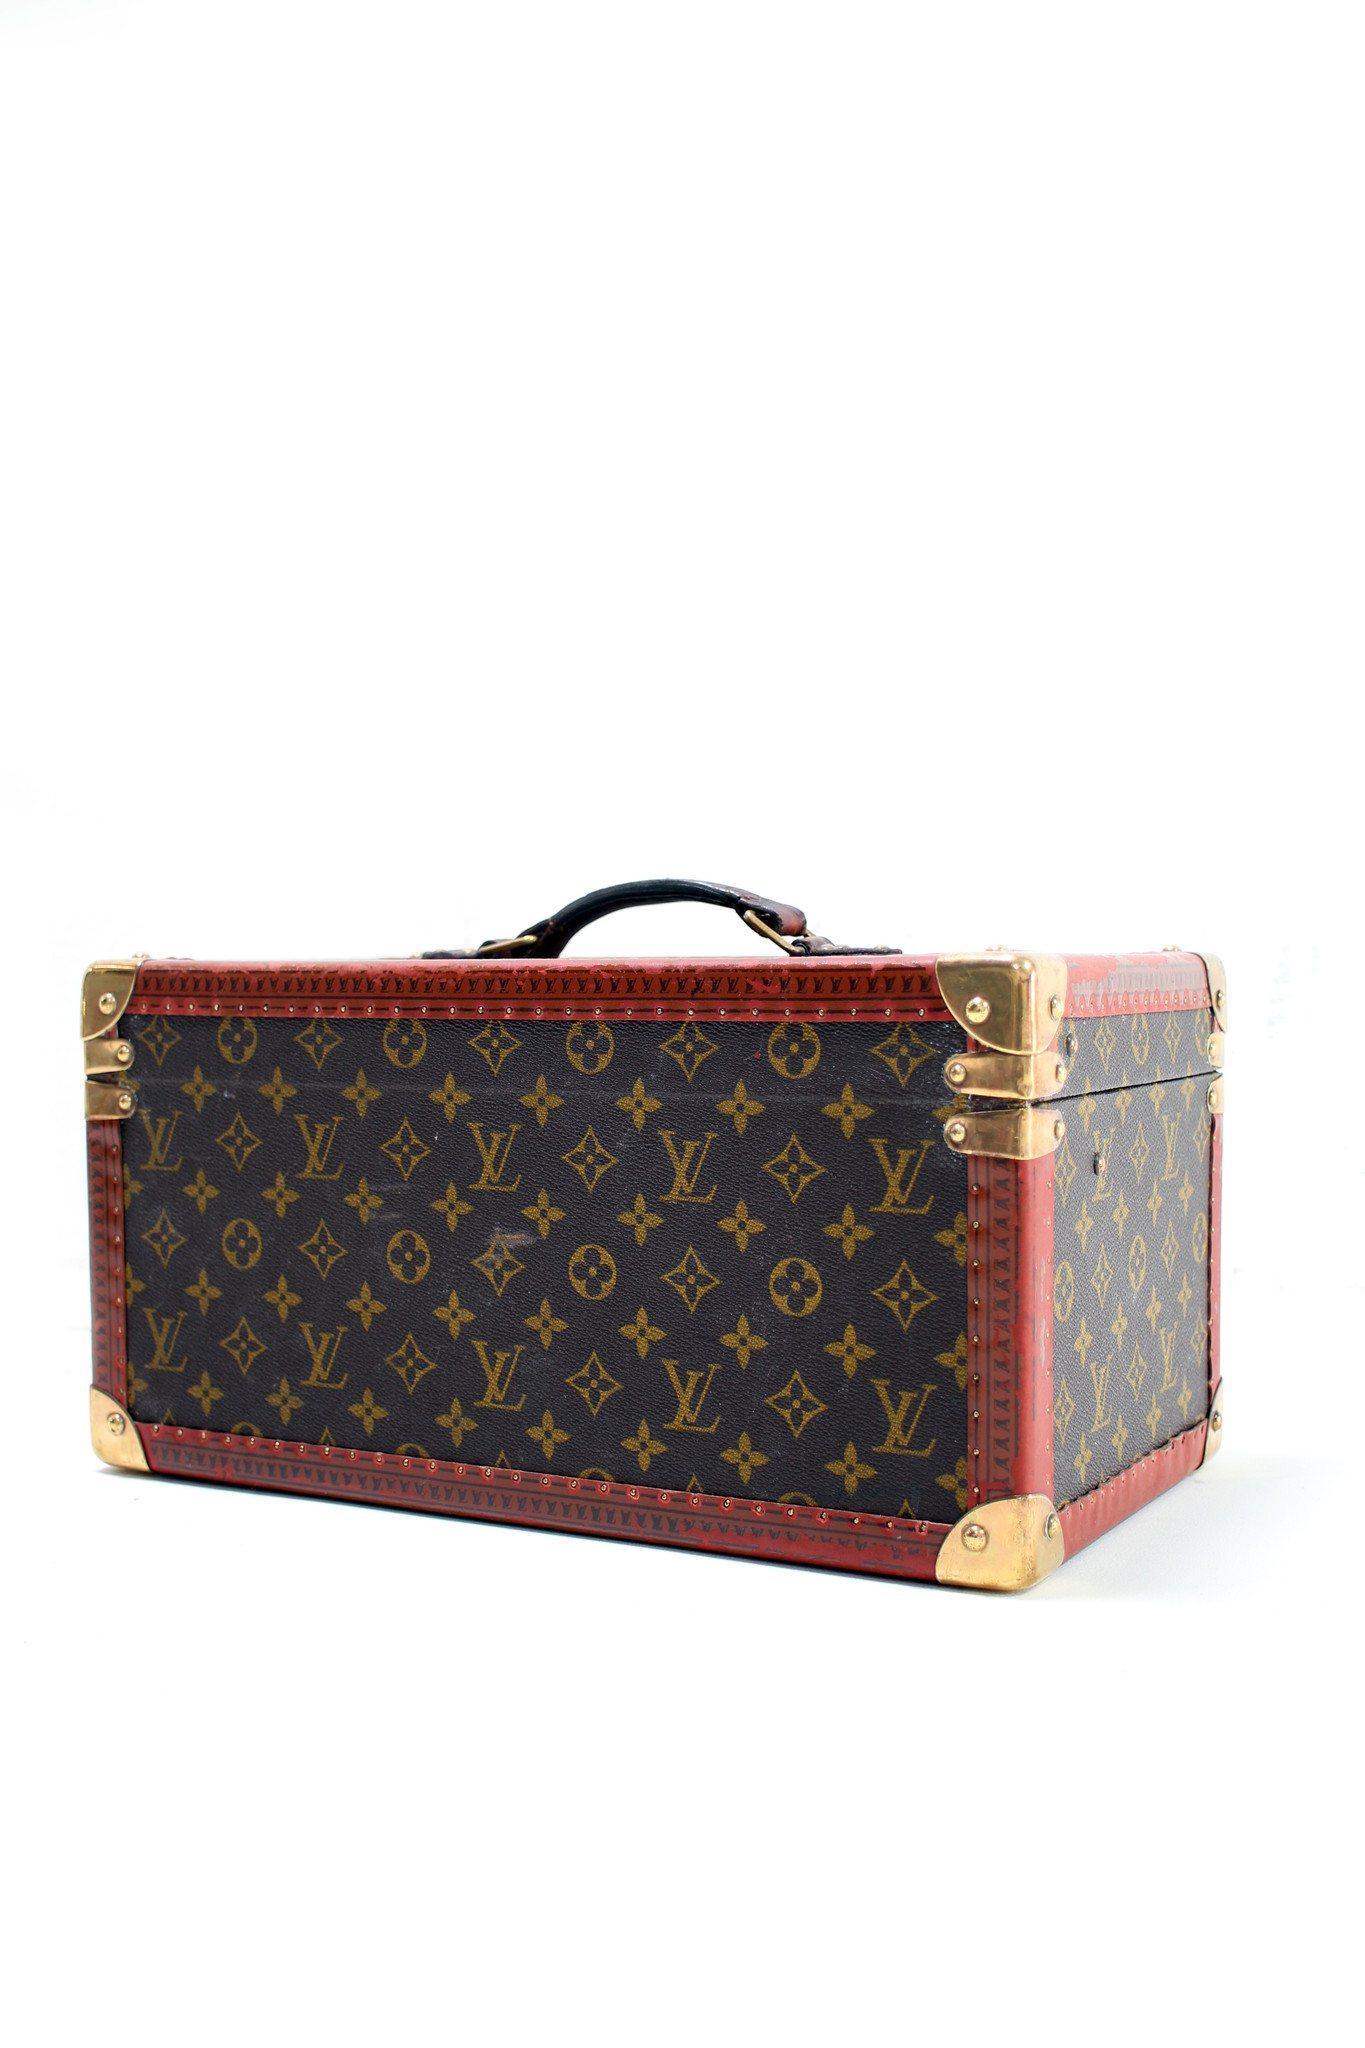 Vintage Louis Vuitton beauty case 1960's